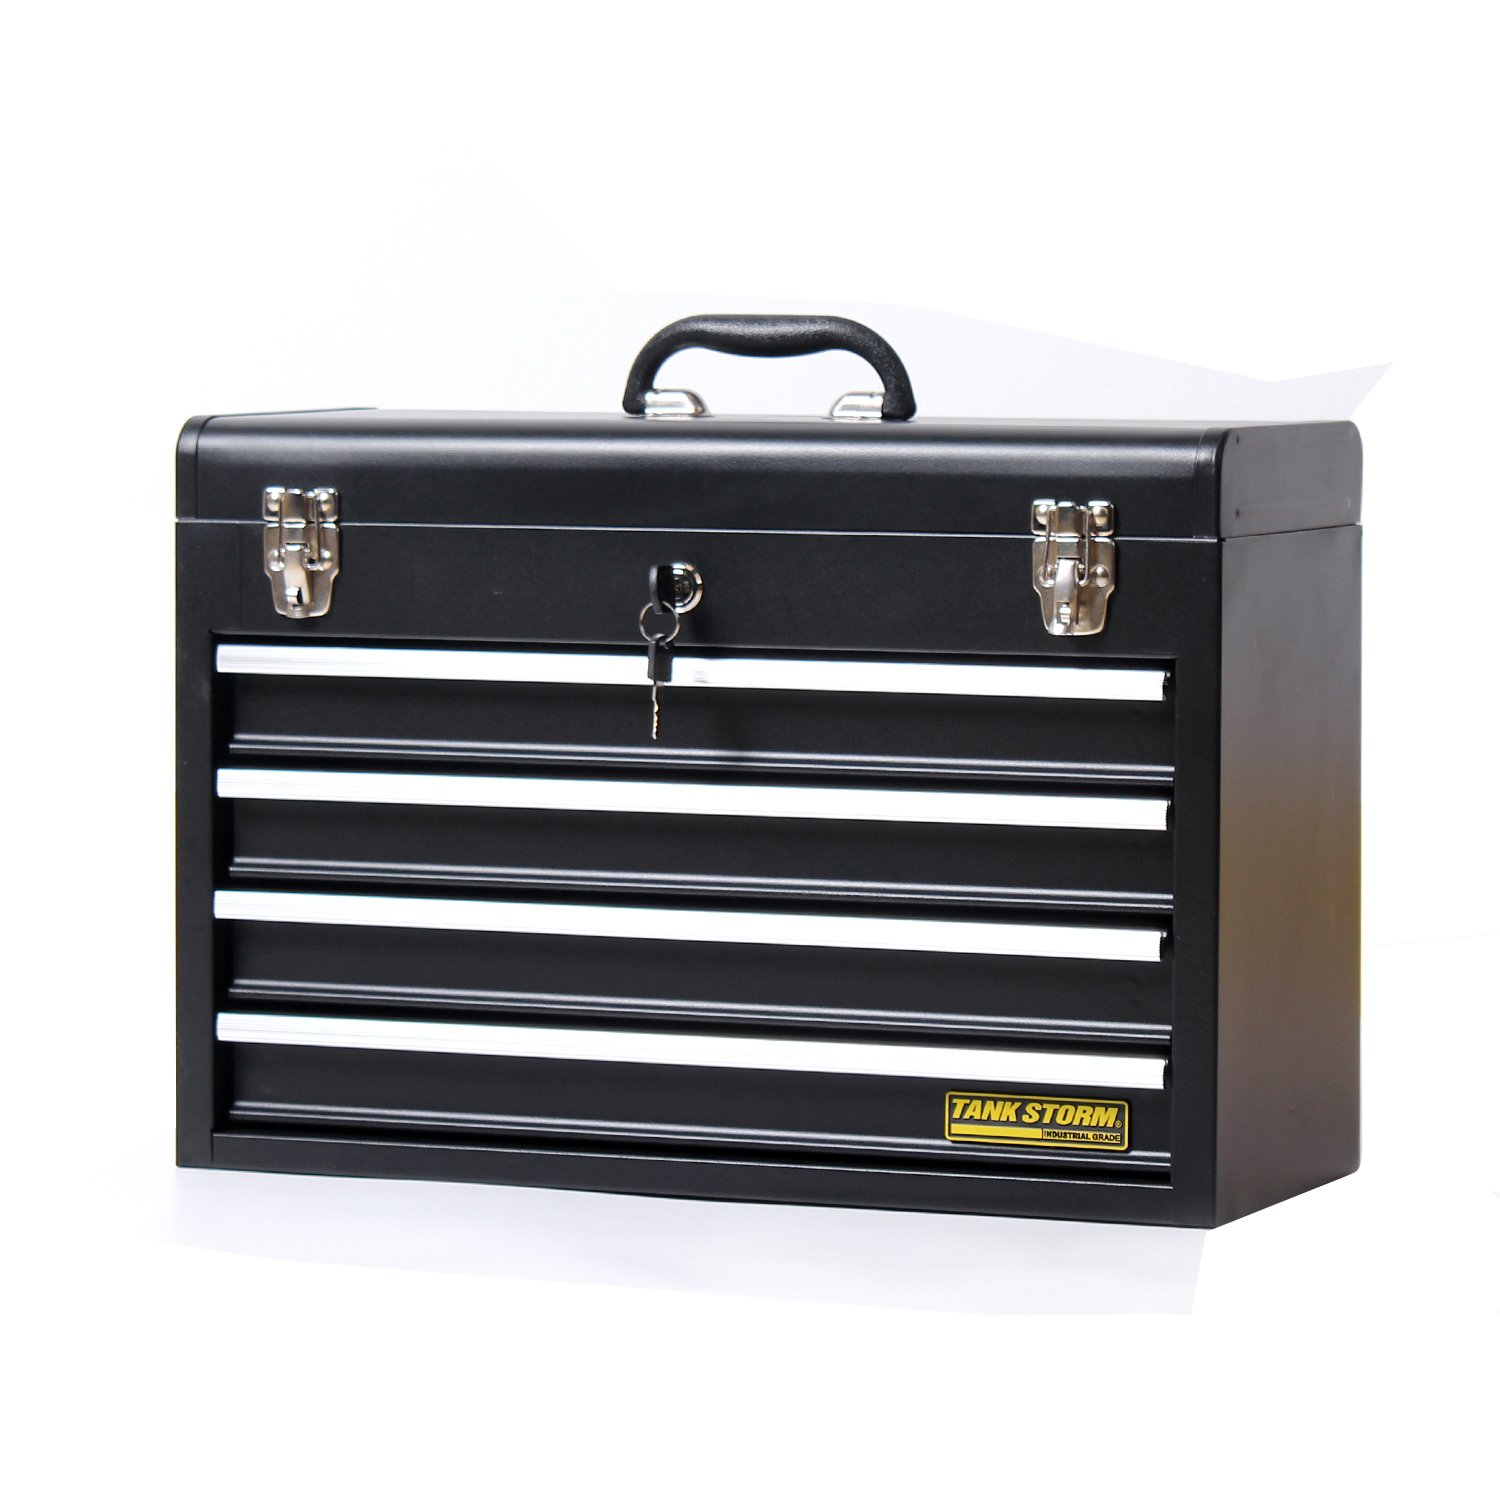 TANKSTORM Portable Steel Tool Chest with Drawers,20.6'' 4-Drawer Box Storage Organizer Cabinet Metal Toolbox with Ball Bearing Slides, Black(X4) by TANKSTORM